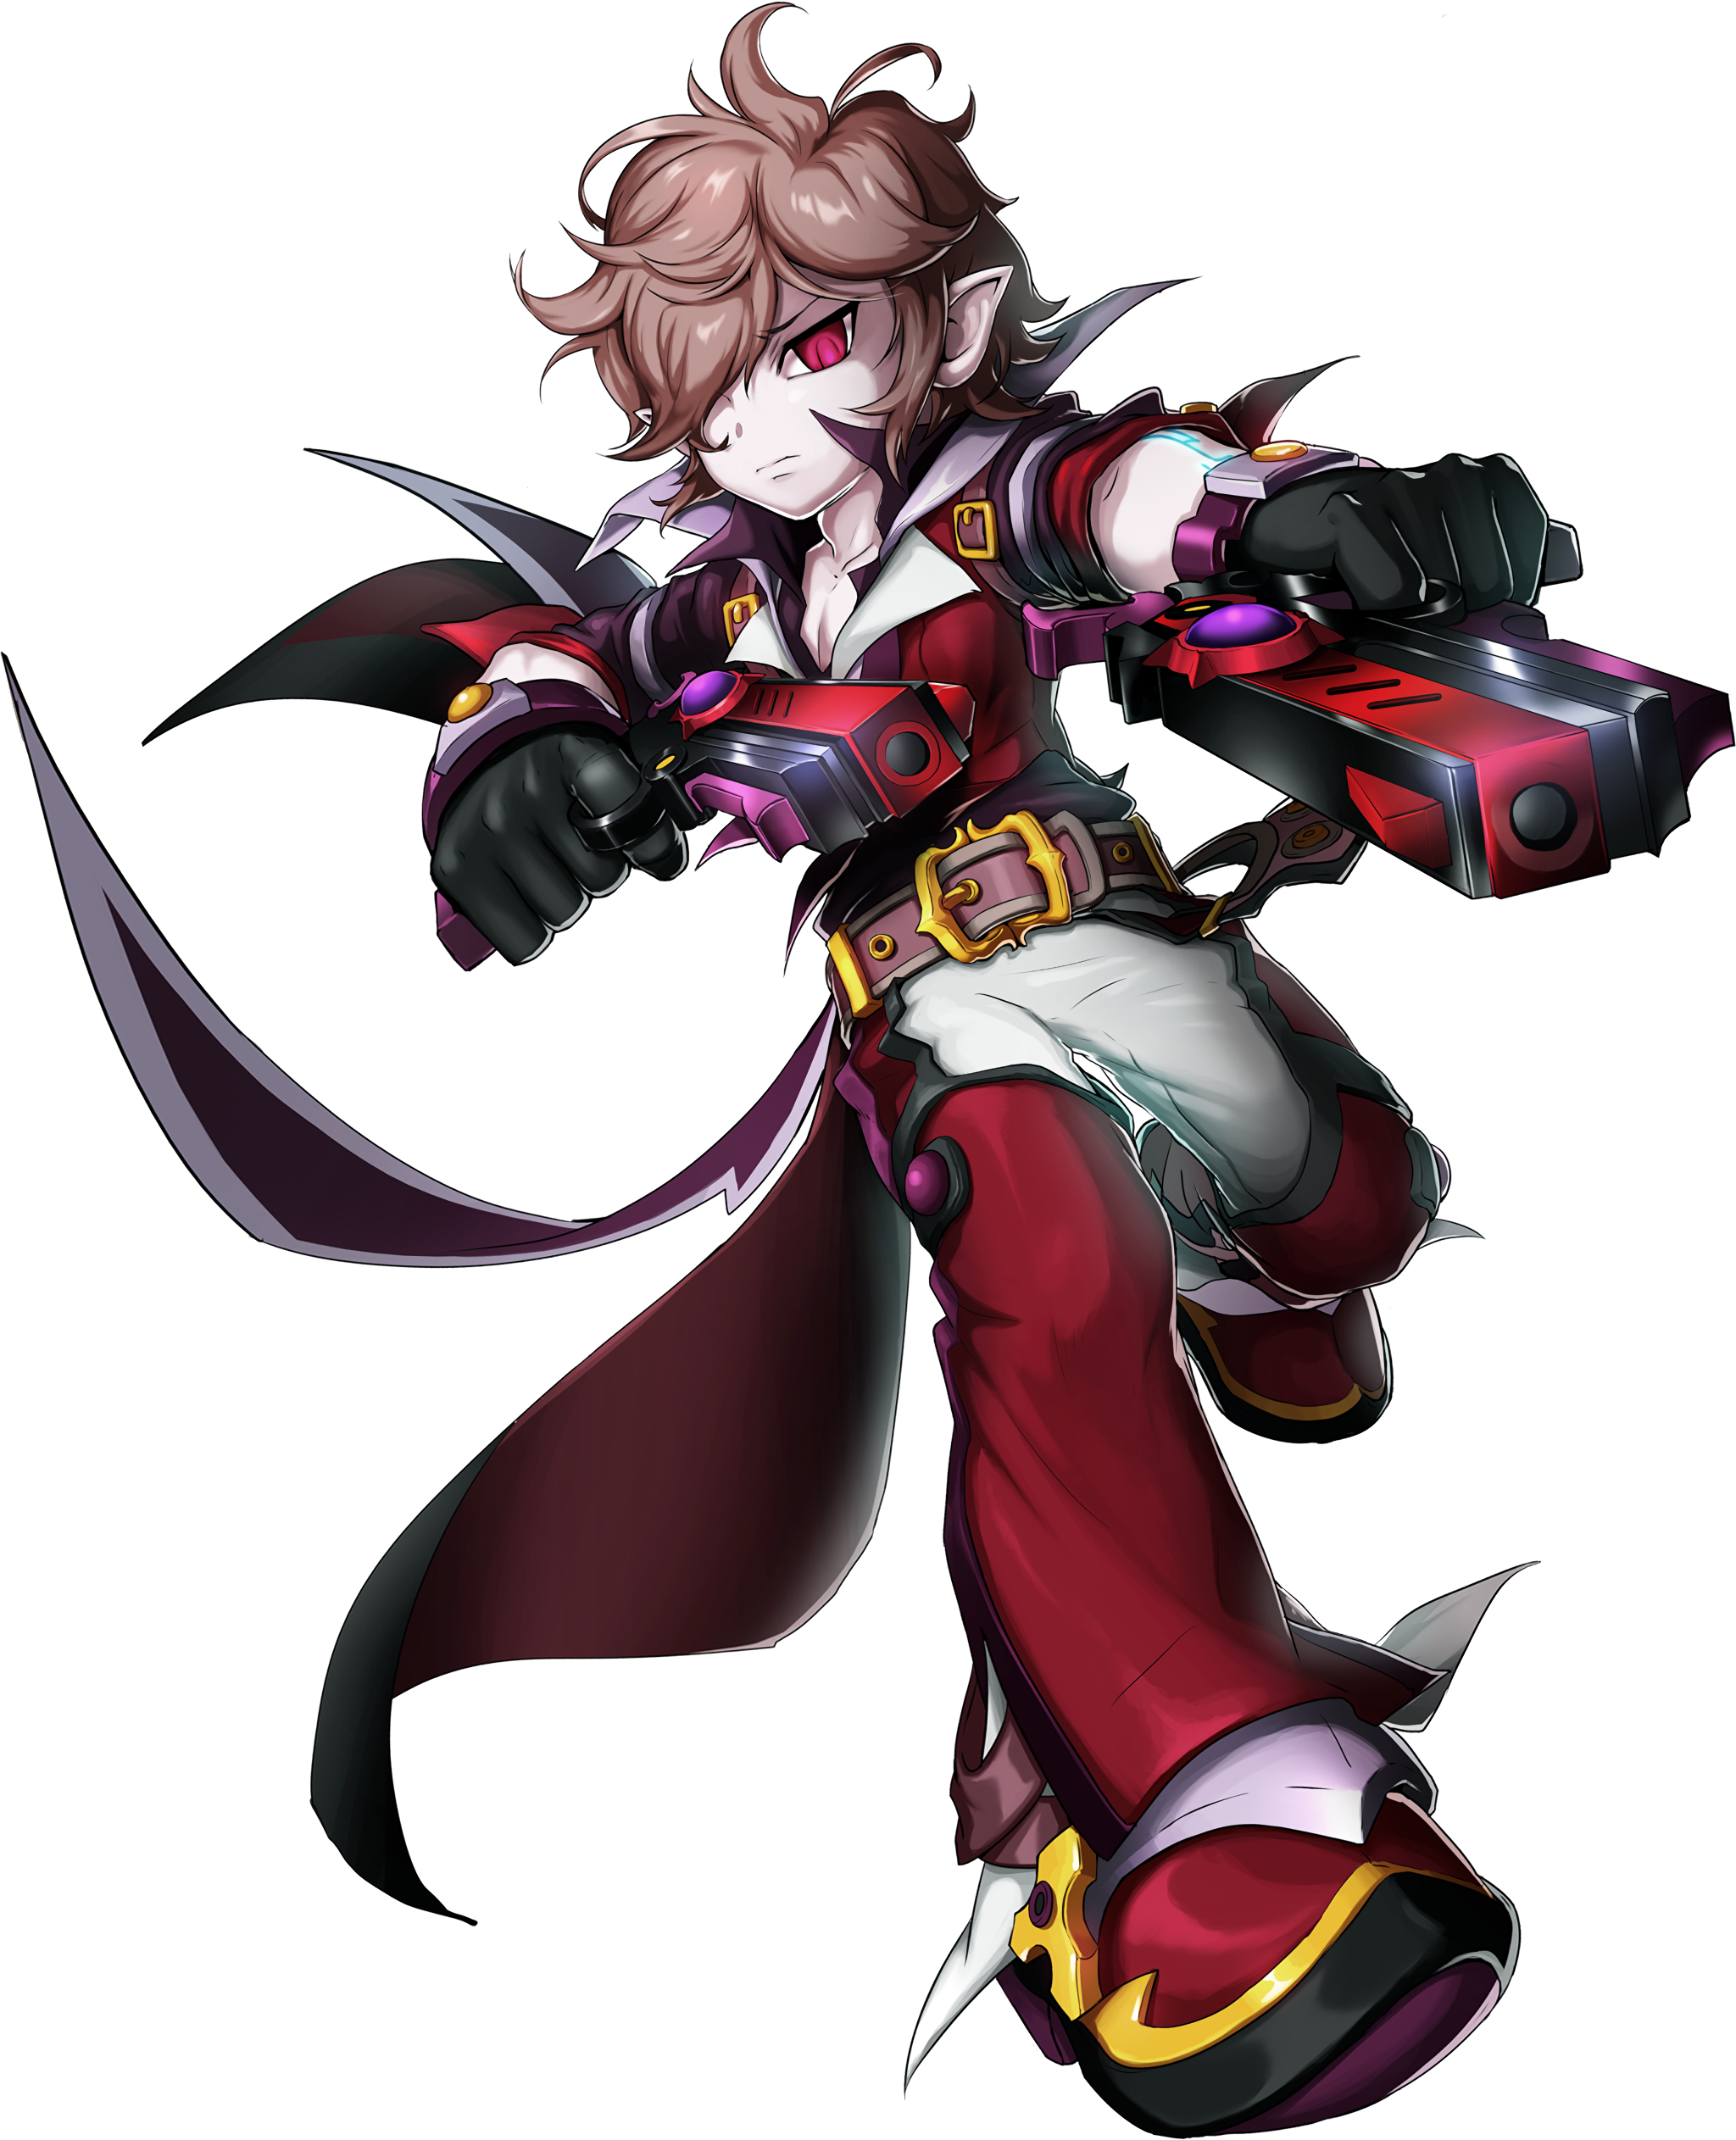 Image Twilight Png Grand Chase Wiki Fandom Powered By Wikia